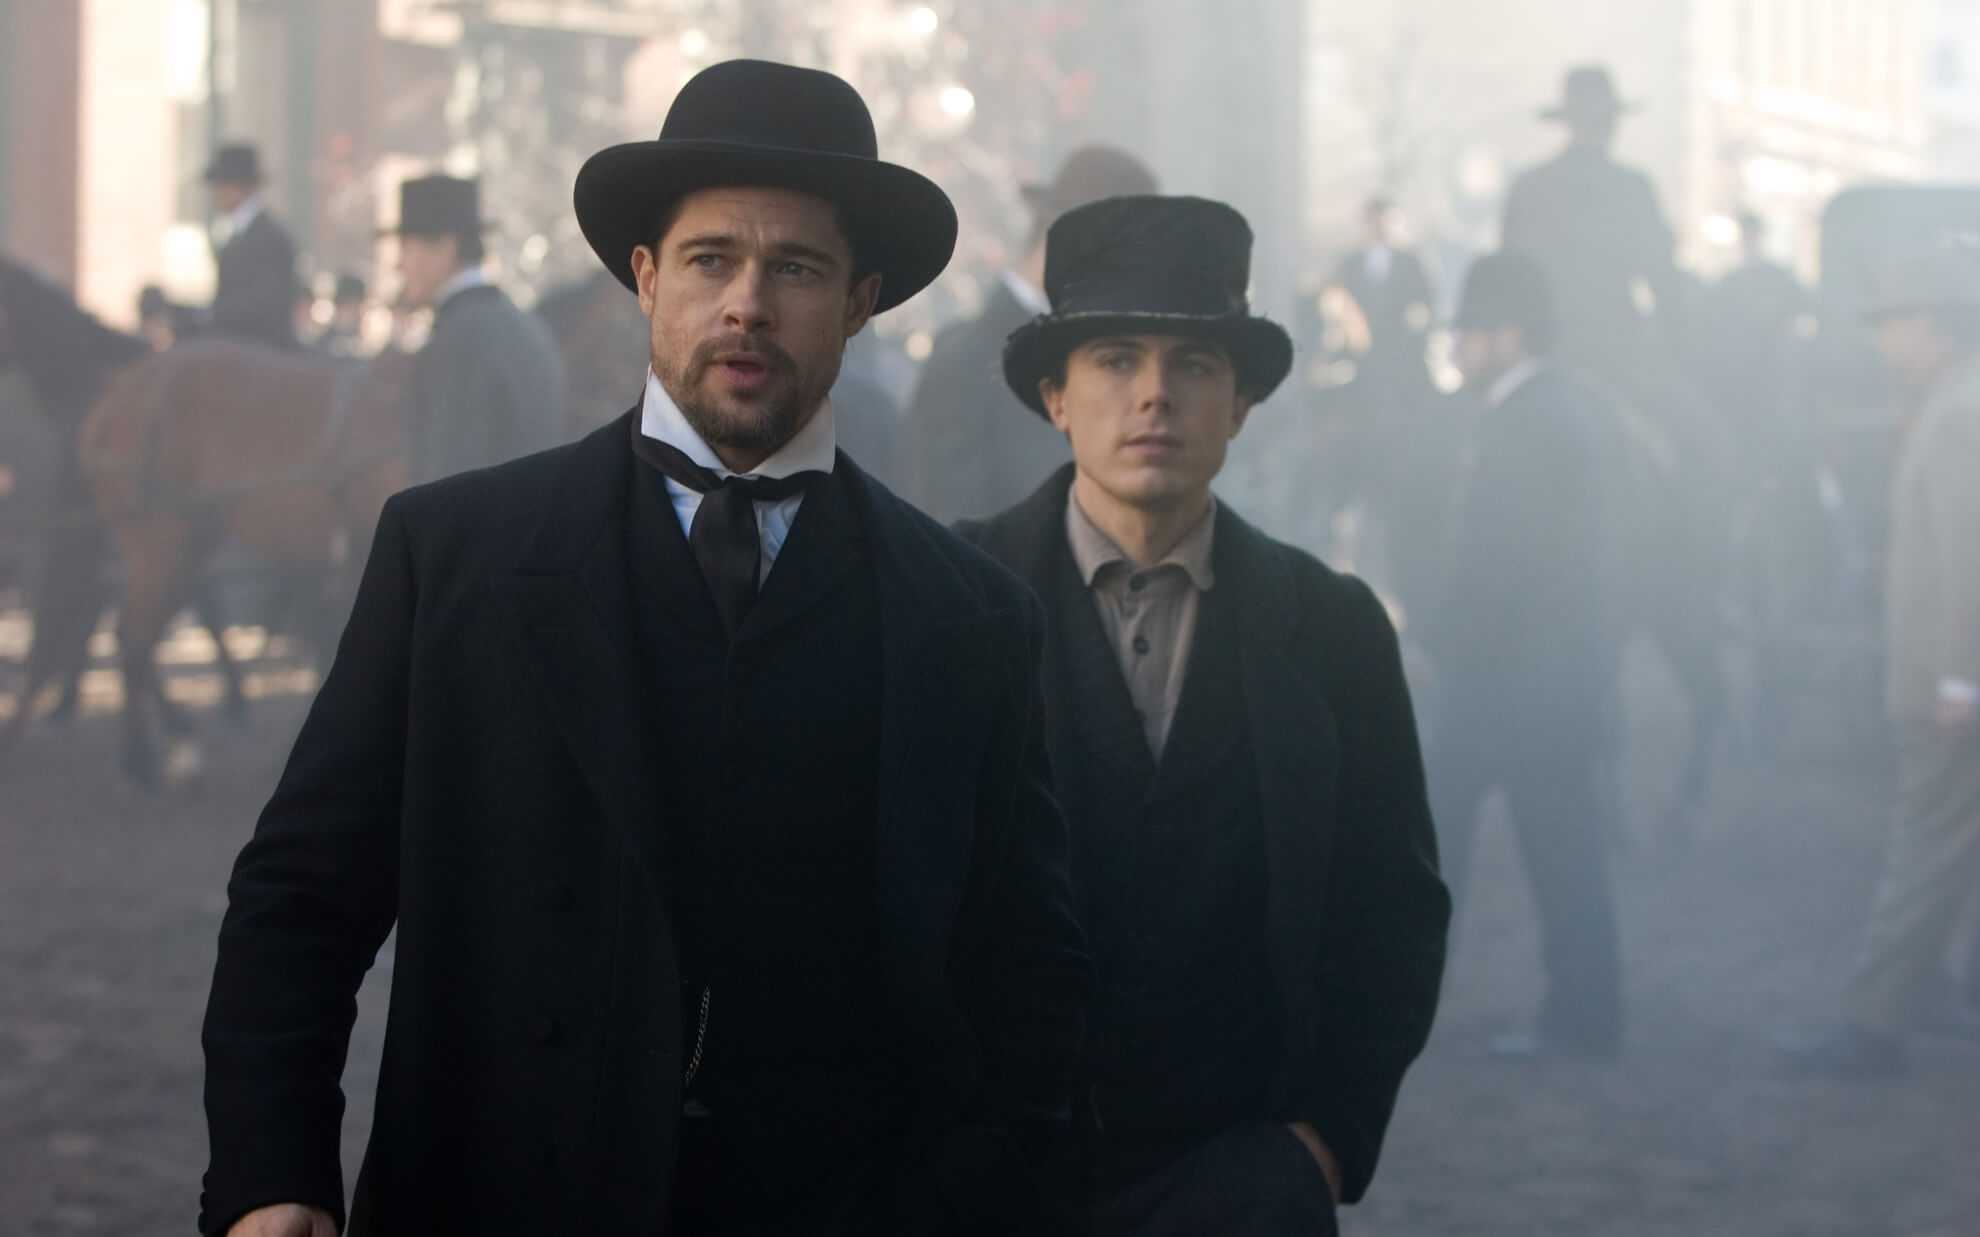 Brad Pitt and Casey Affleck in The Assassination of Jesse James by the Coward Robert Ford